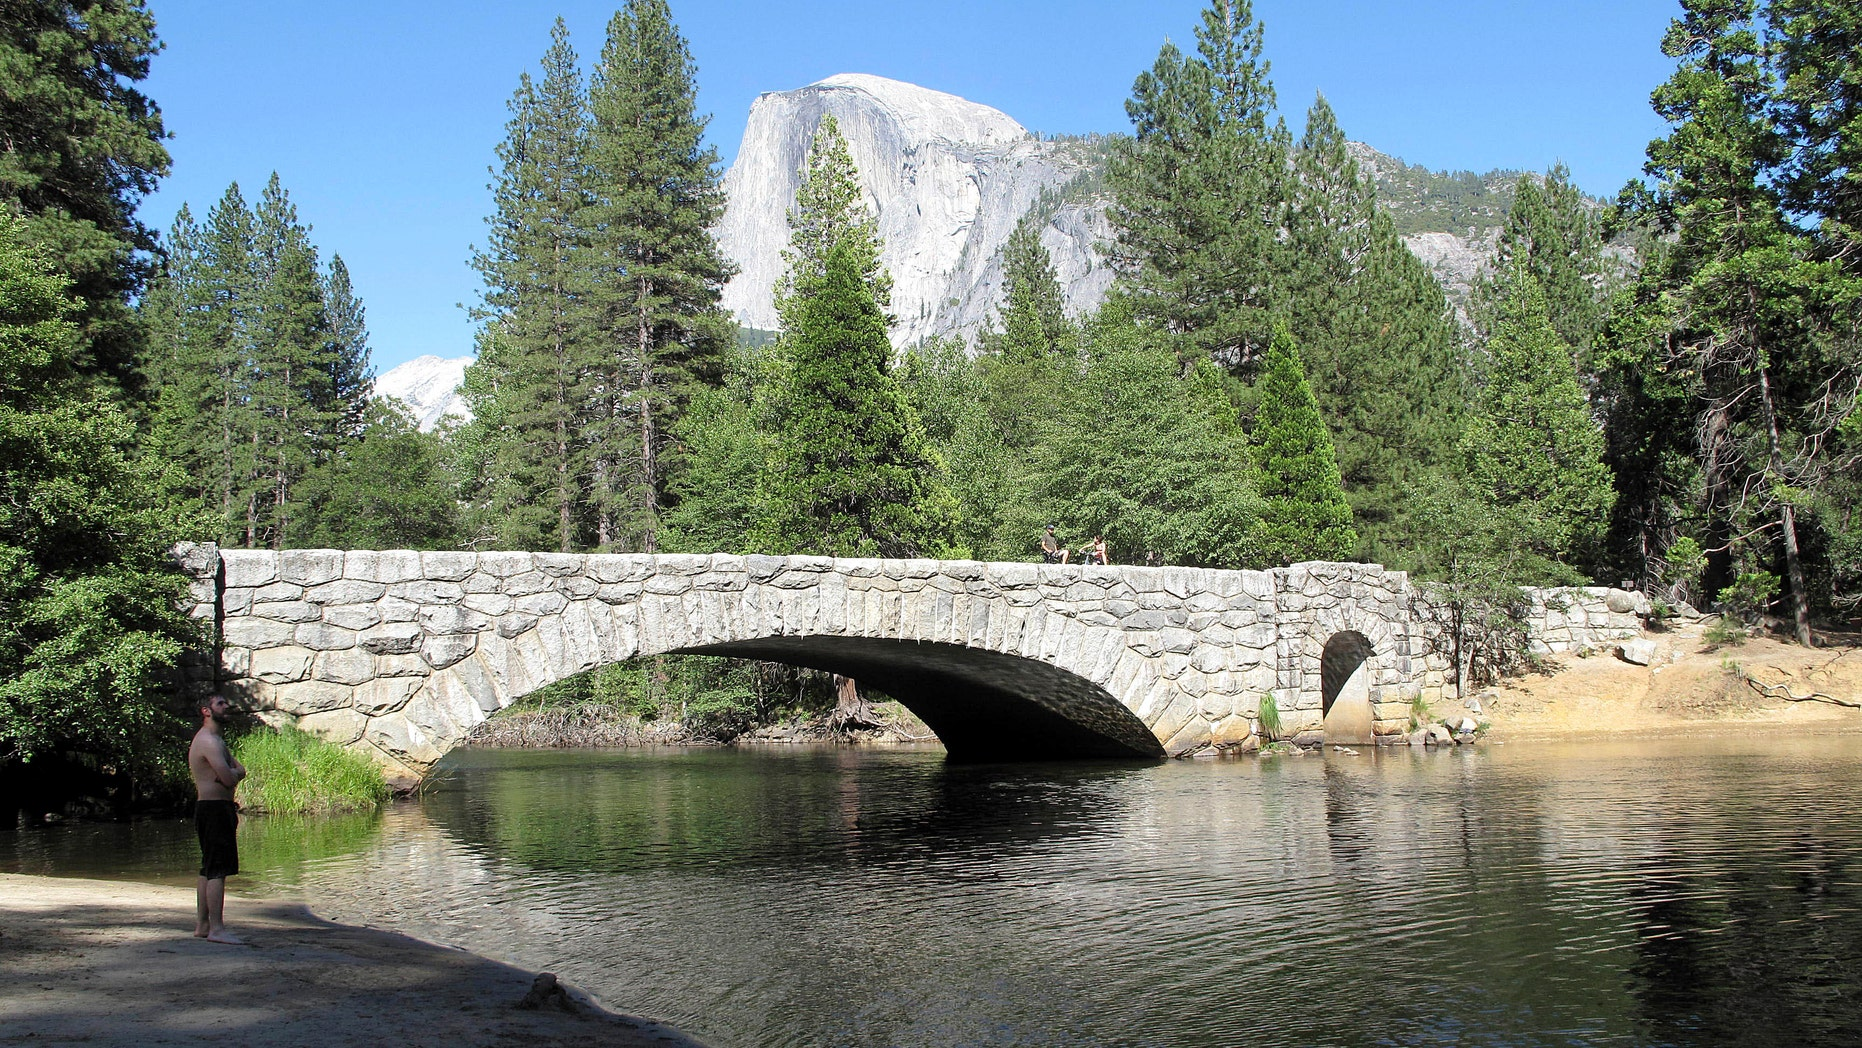 June 12, 2012: This photo shows Yosemite National Park's Stoneman Bridge, a single, arching span faced with rough-hewn granite, provides a dramatic foreground to Half Dome, the park's most iconic feature.